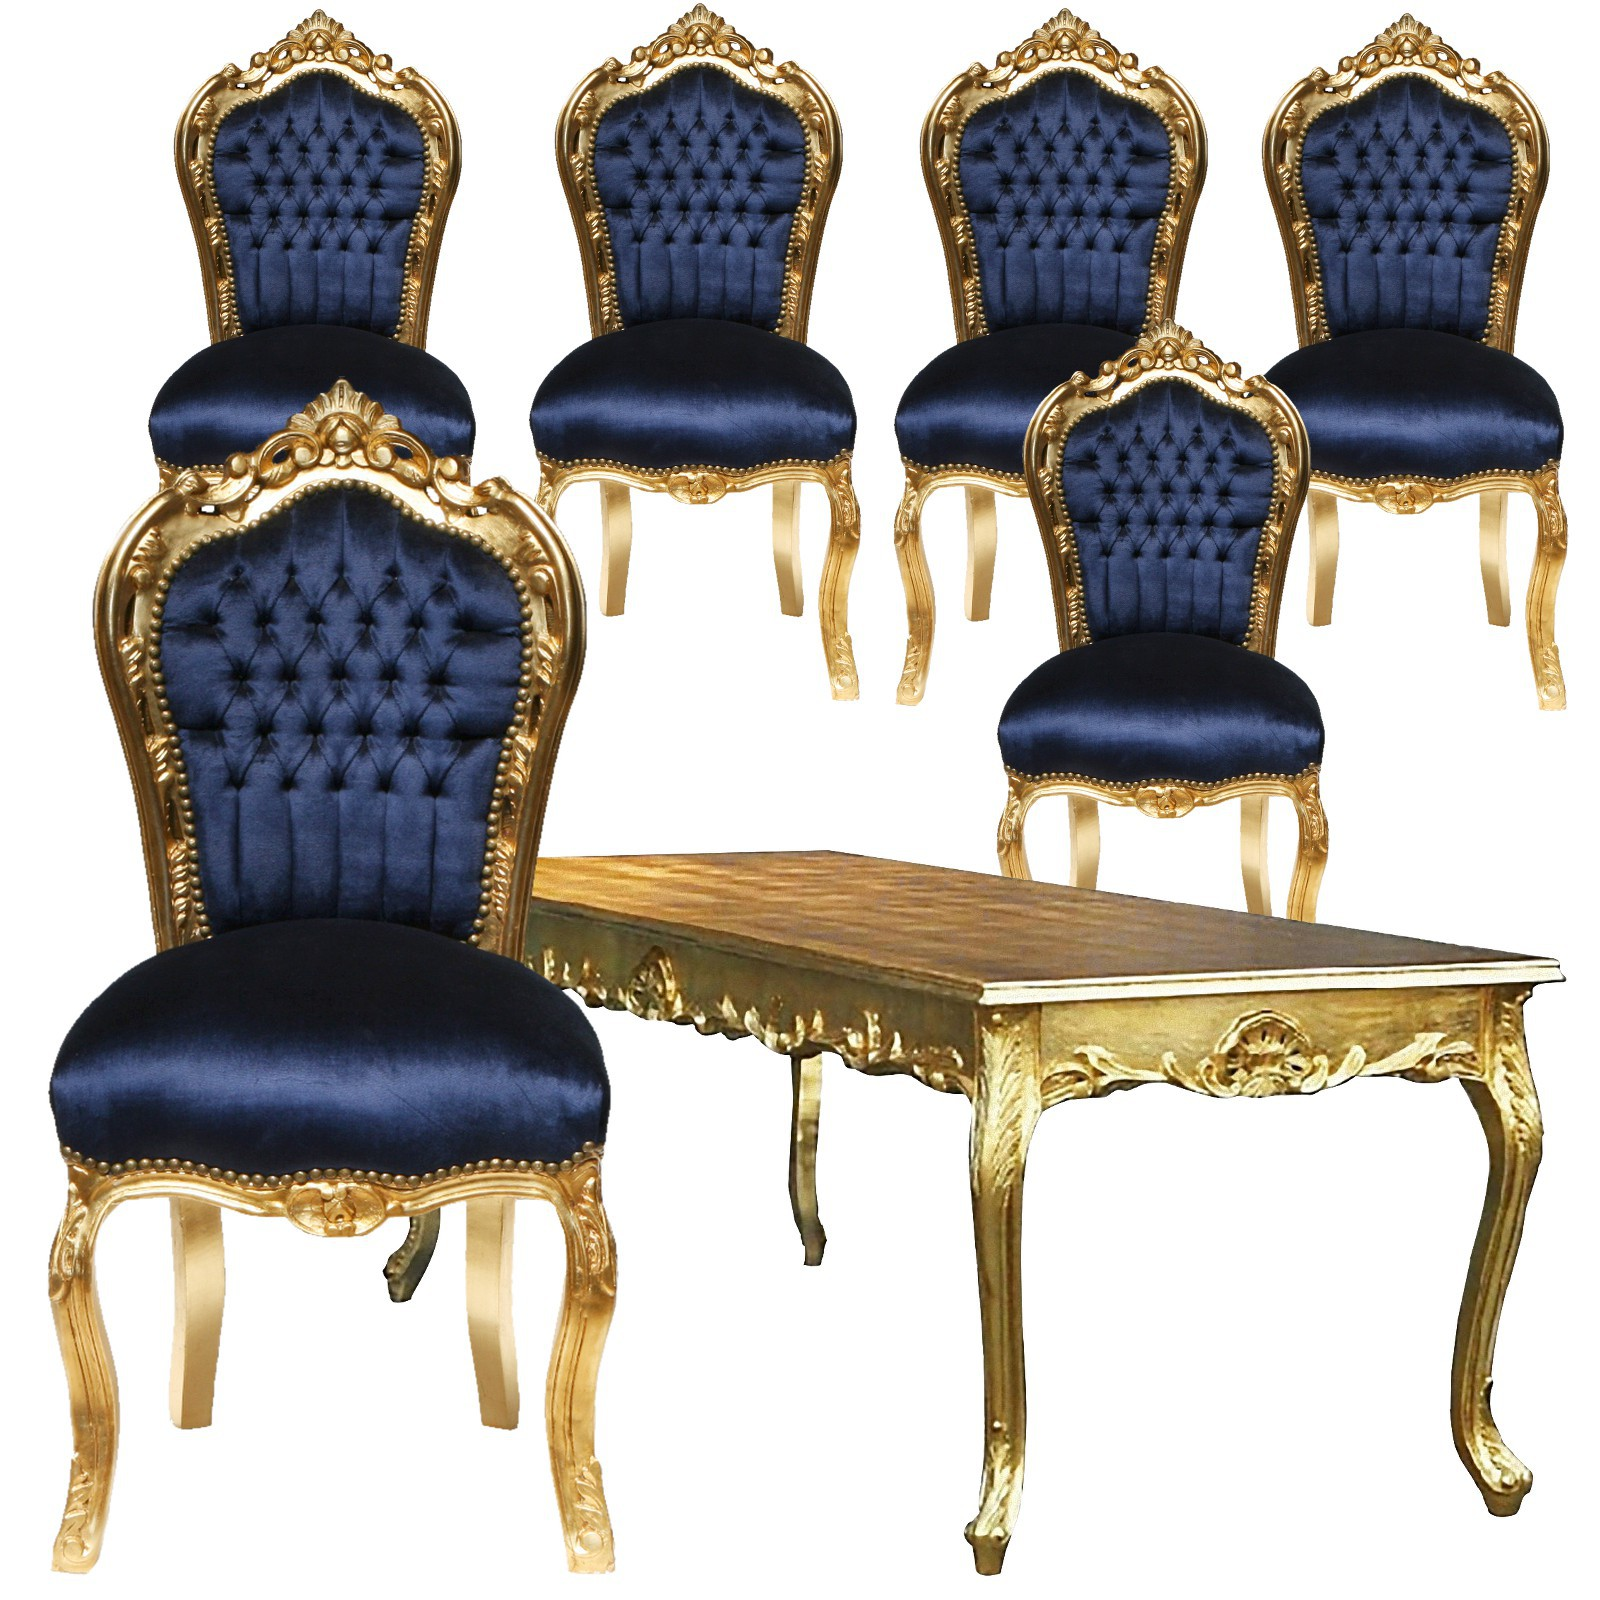 tisch stuhl massivholz set angebot barockm bel esszimmer top setpreis blau gold. Black Bedroom Furniture Sets. Home Design Ideas